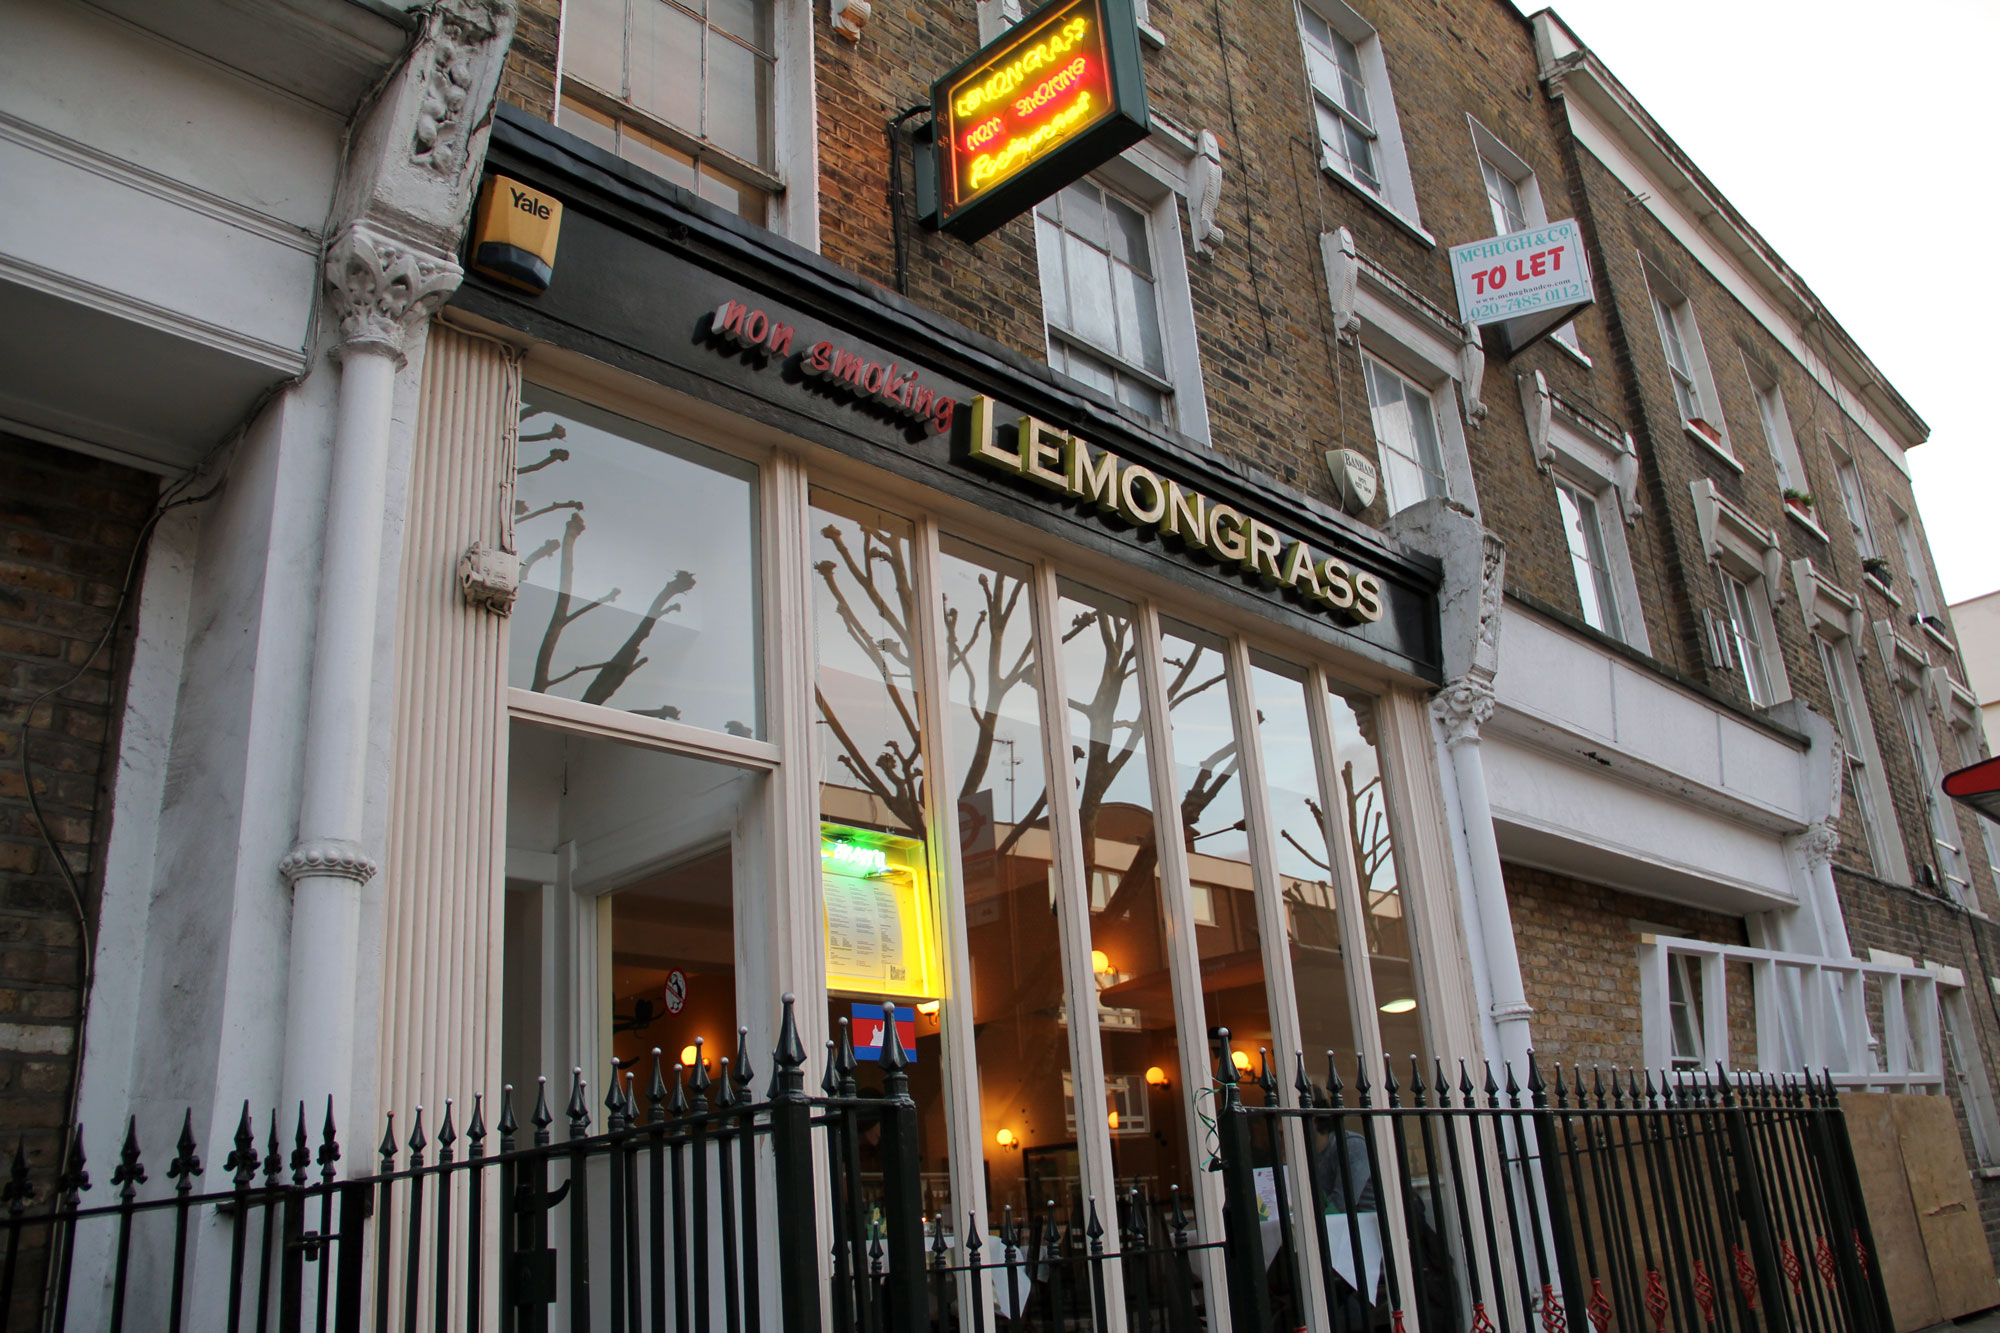 cambodia-restaurant-london-genocide6